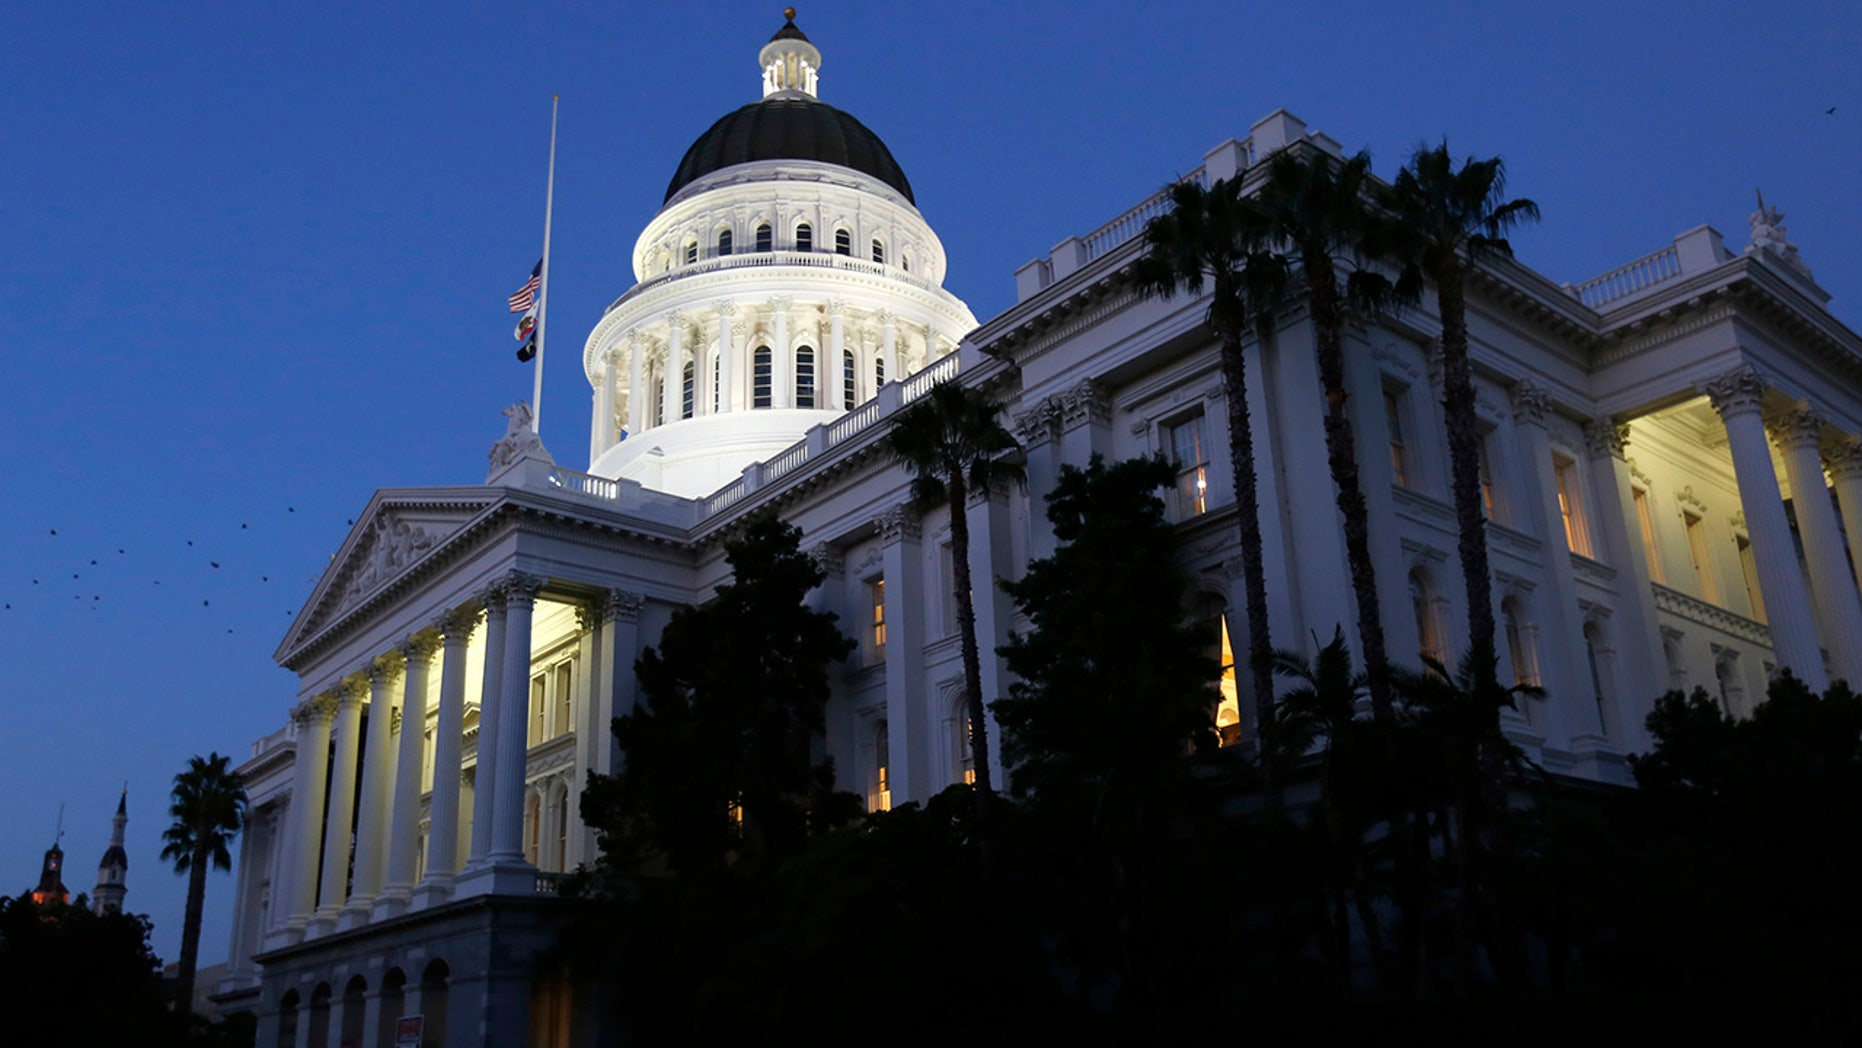 The site outside of the California Capitol in Sacramento (as of August 31, 2018) is expected to be the location of Sunday.